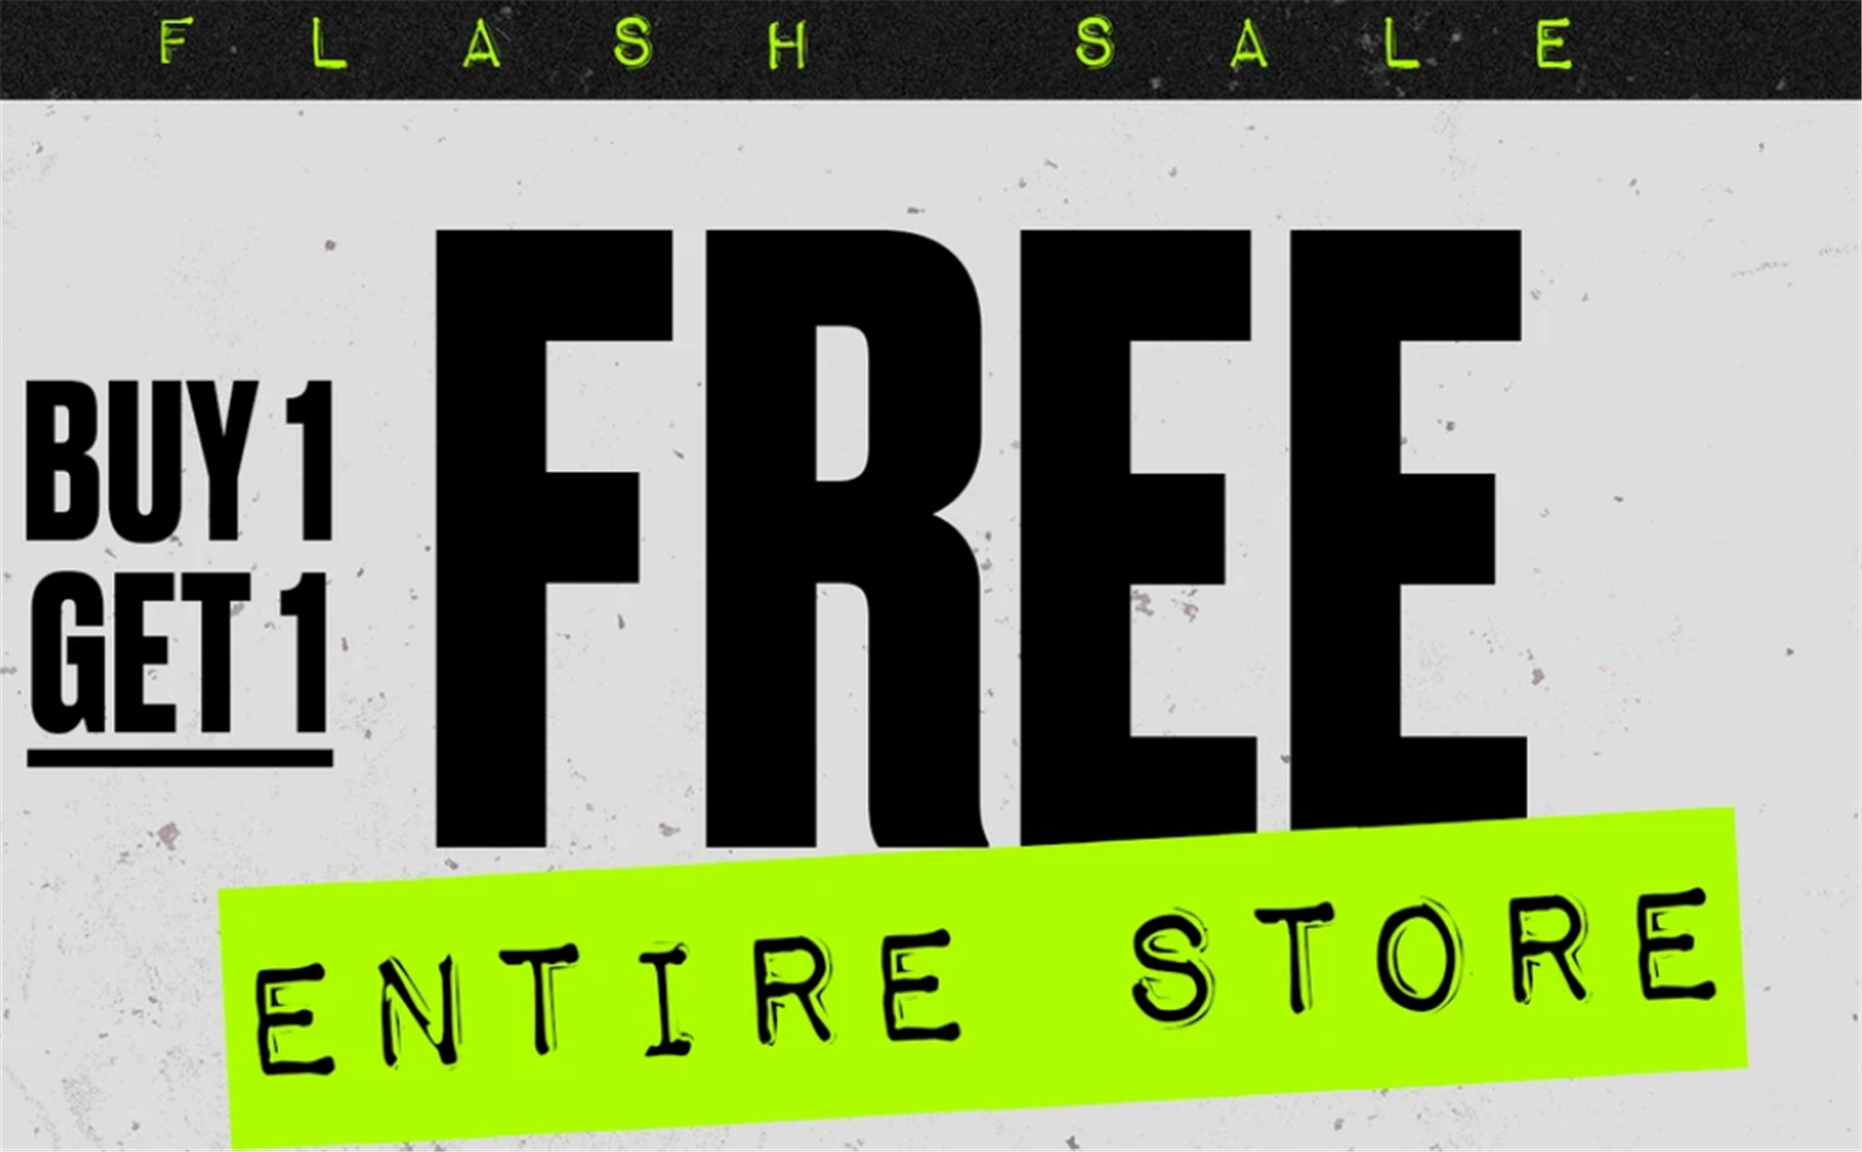 Active Ride Shop – Entire Site Is BOGO FREE! Chuck Taylor All Star Shoes Only $25.00, Reg $50!